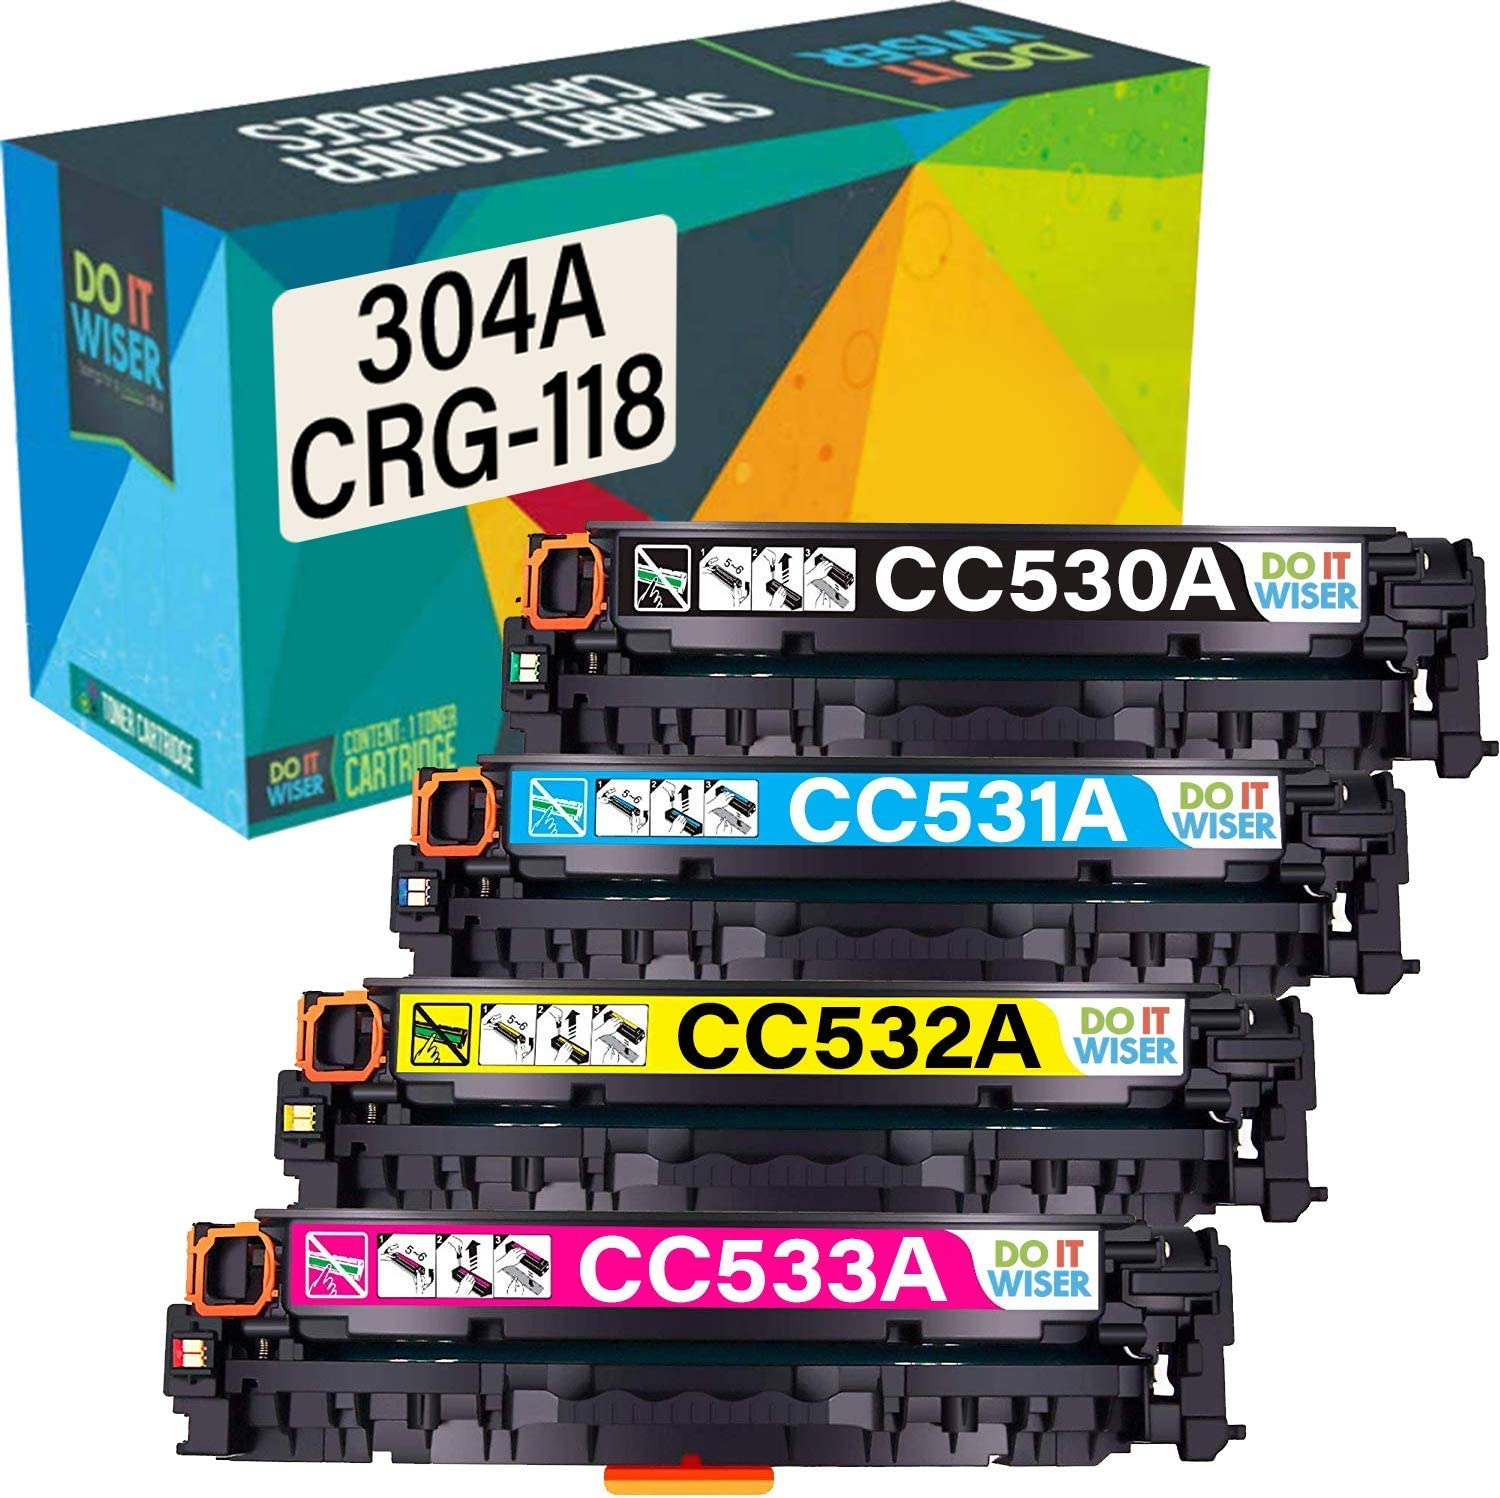 Do it Wiser Remanufactured Toner Cartridge Replacement for Canon 118 HP 304A Canon MF8580CDW MF8380CDW MF8350CDN HP Color Laserjet CP2025DN CP2025N CP2025X CM2320N (4-Pack)